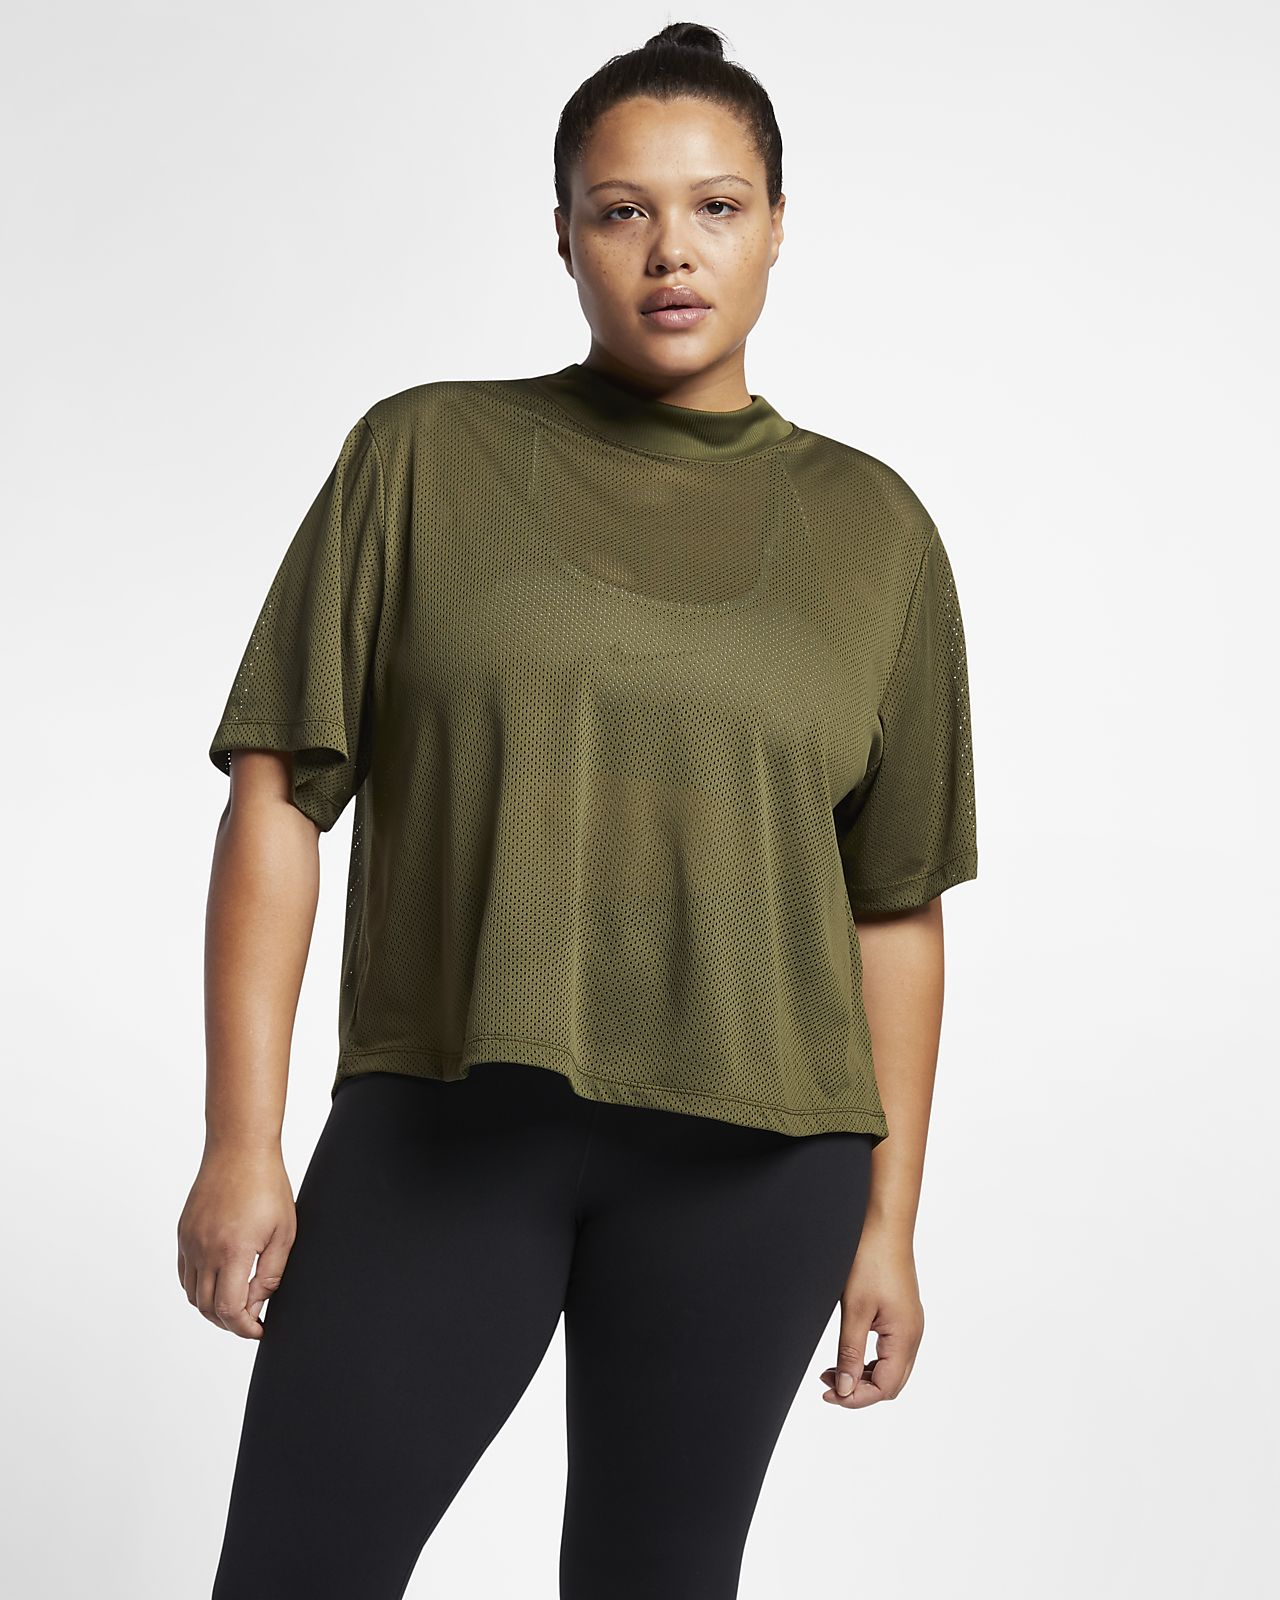 fa9f4e89e0c Nike Dri-FIT Women s Short-Sleeve Training Top (Plus Size). Nike.com GB